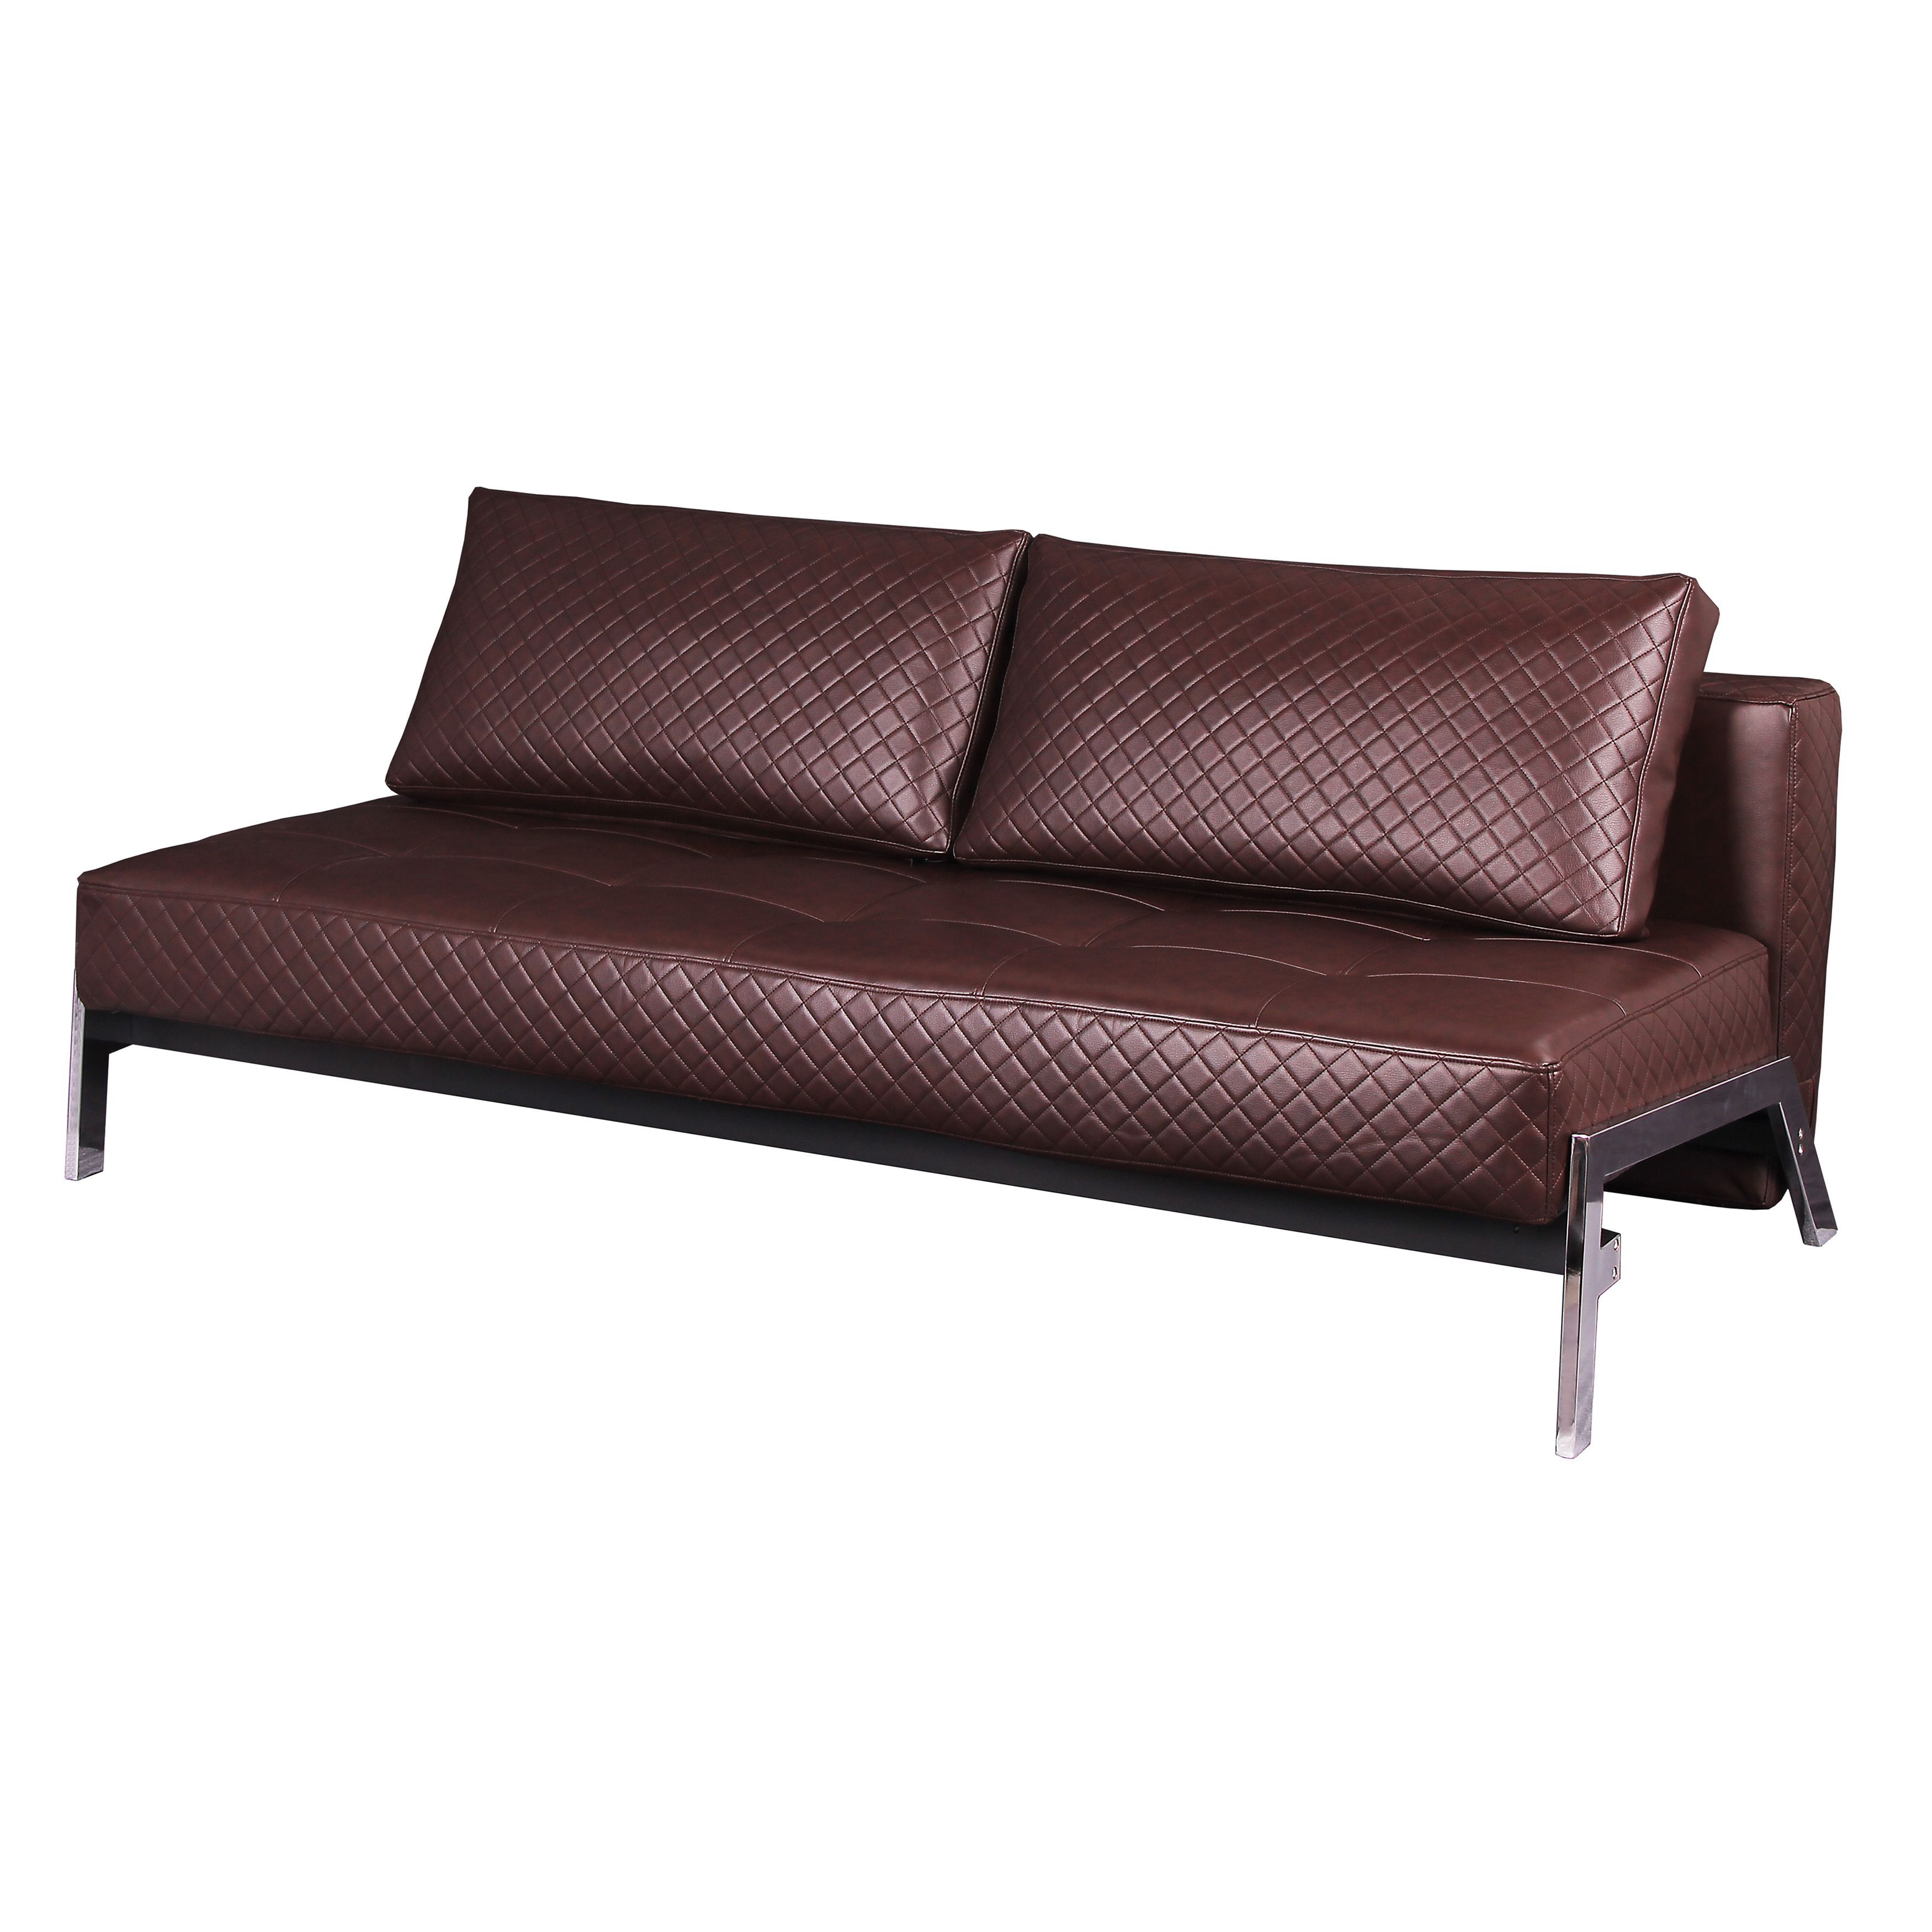 james antique brown quilted bonded leather futon sleeper a303